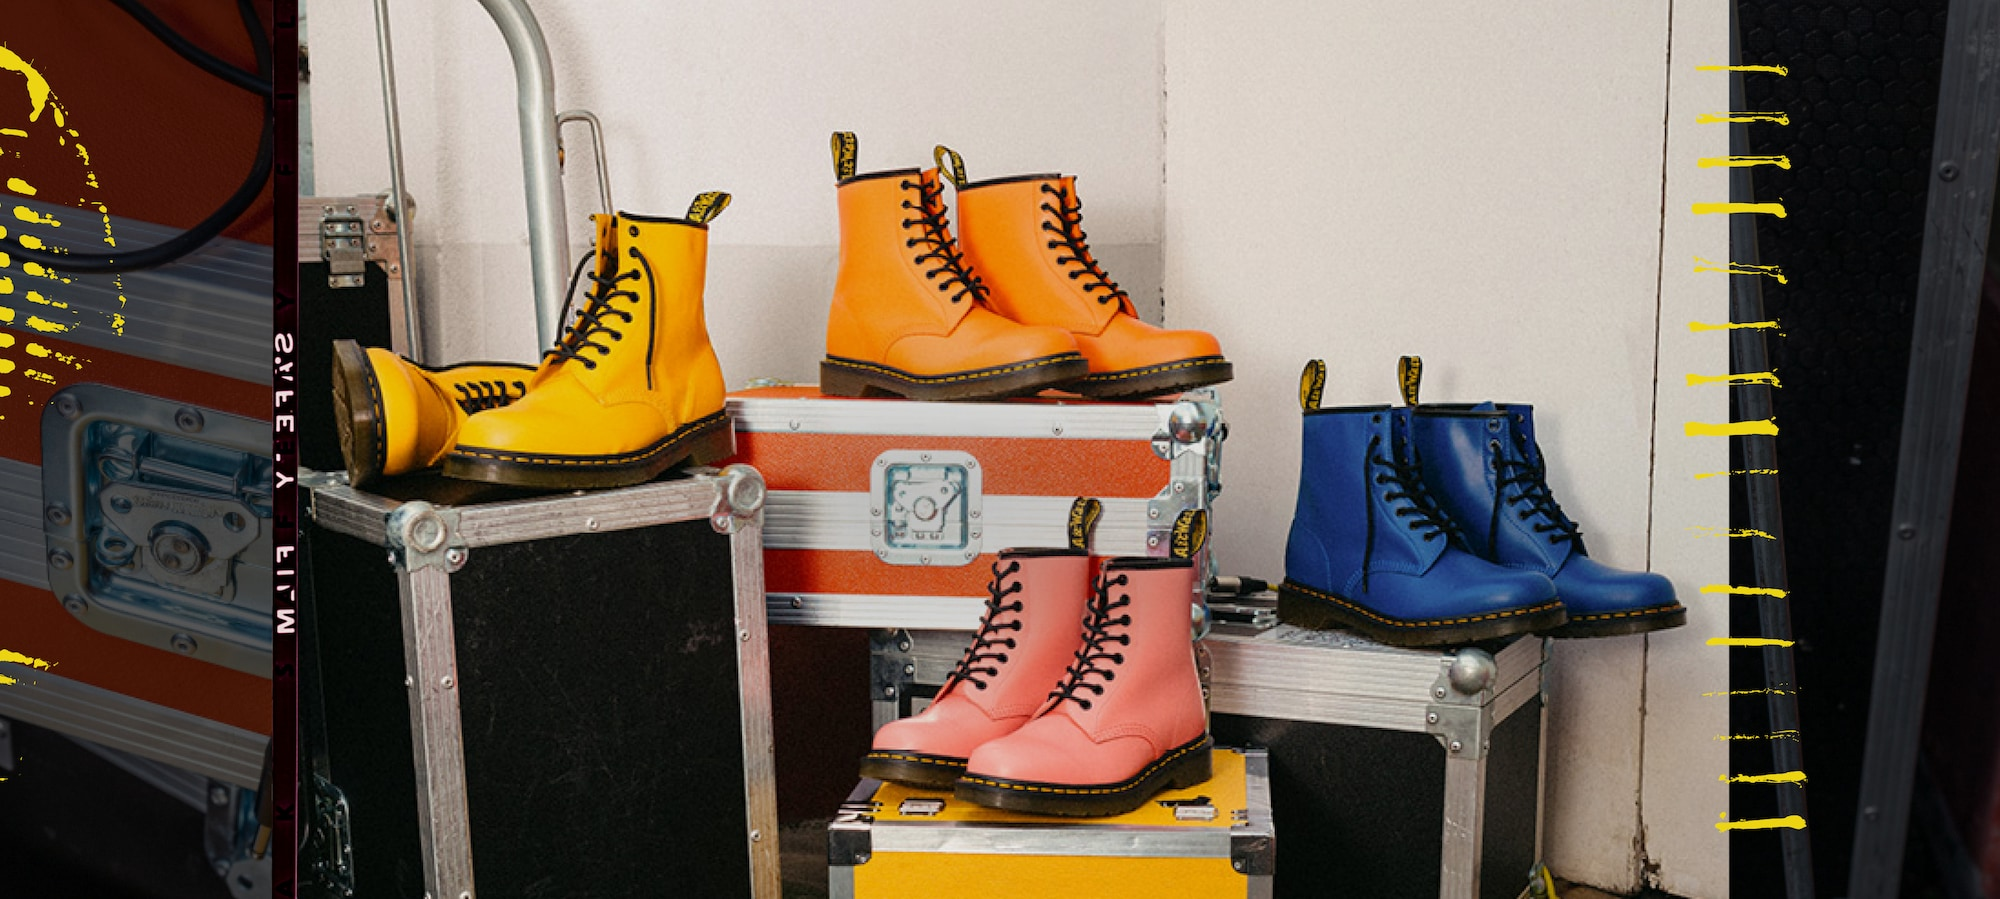 Bring on the new season. Dr. Martens